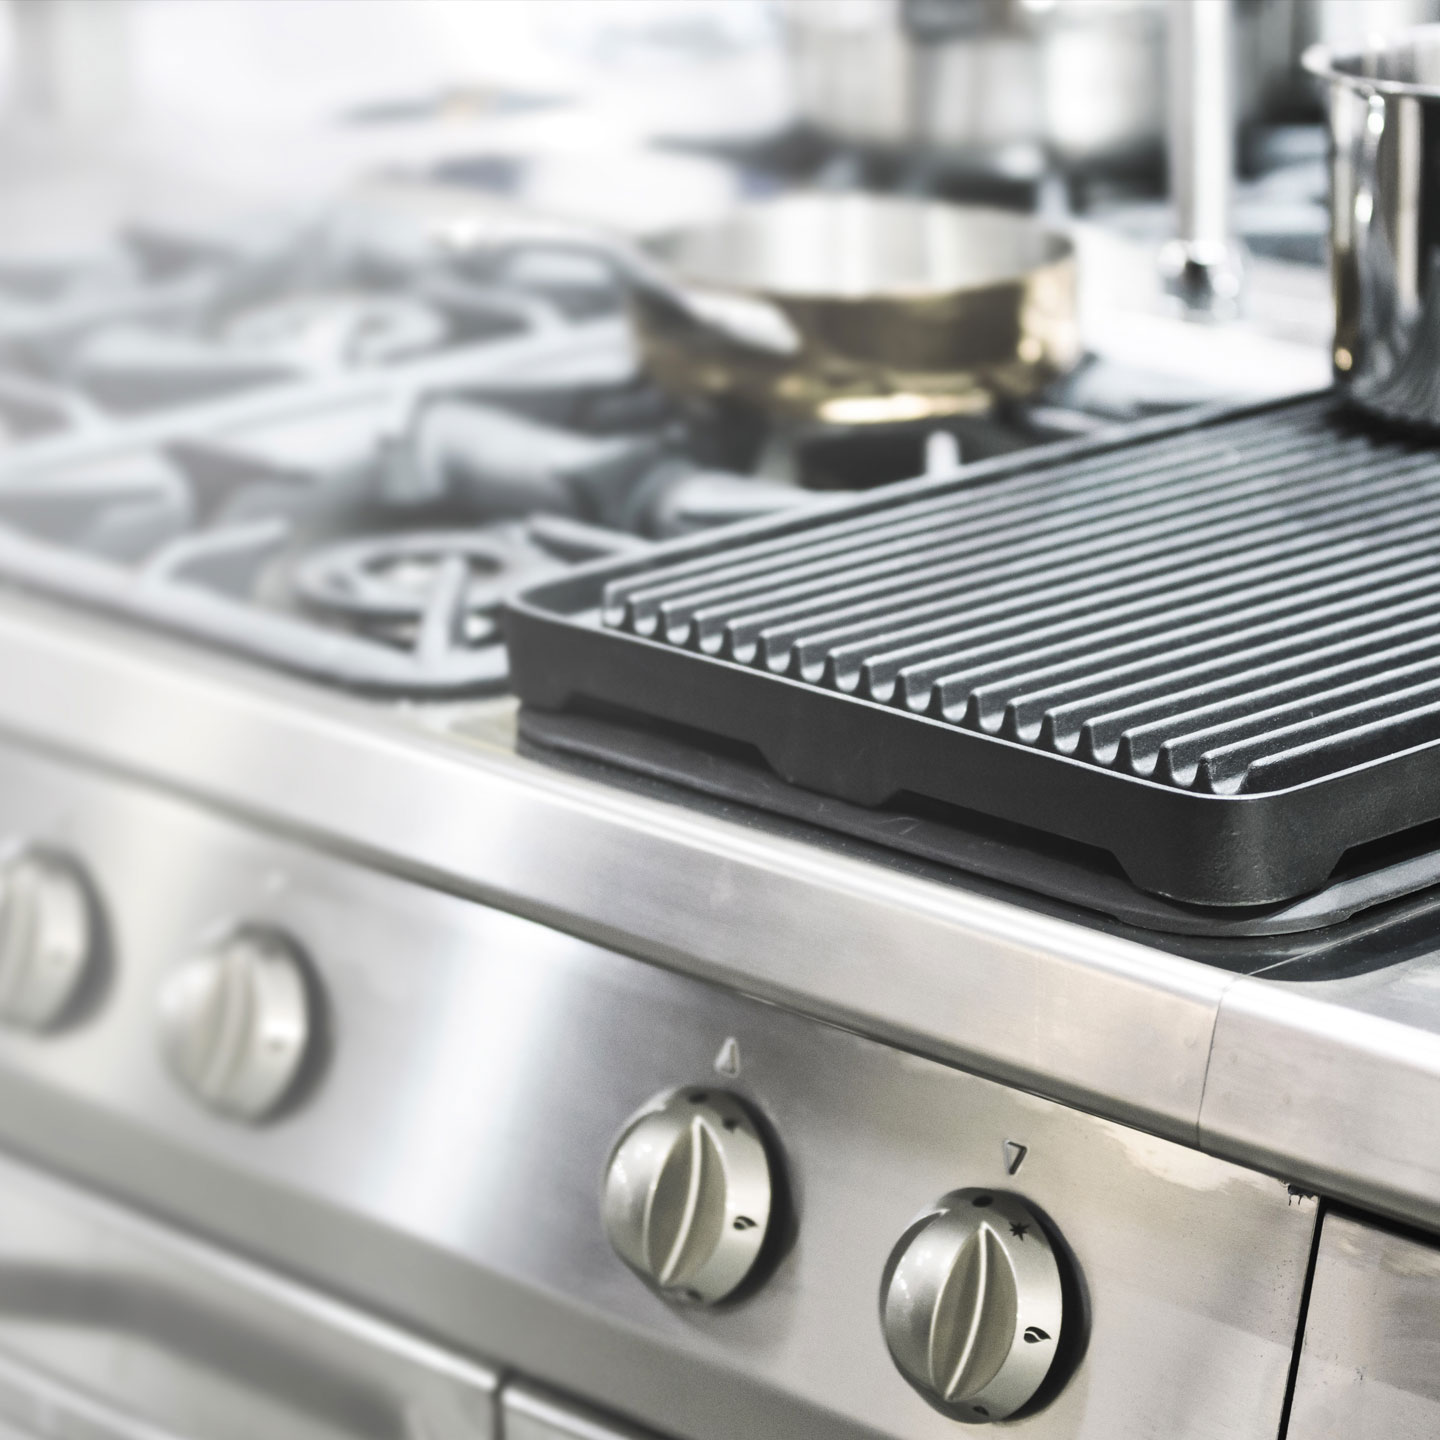 Product selection that meets your commercial kitchen needs.